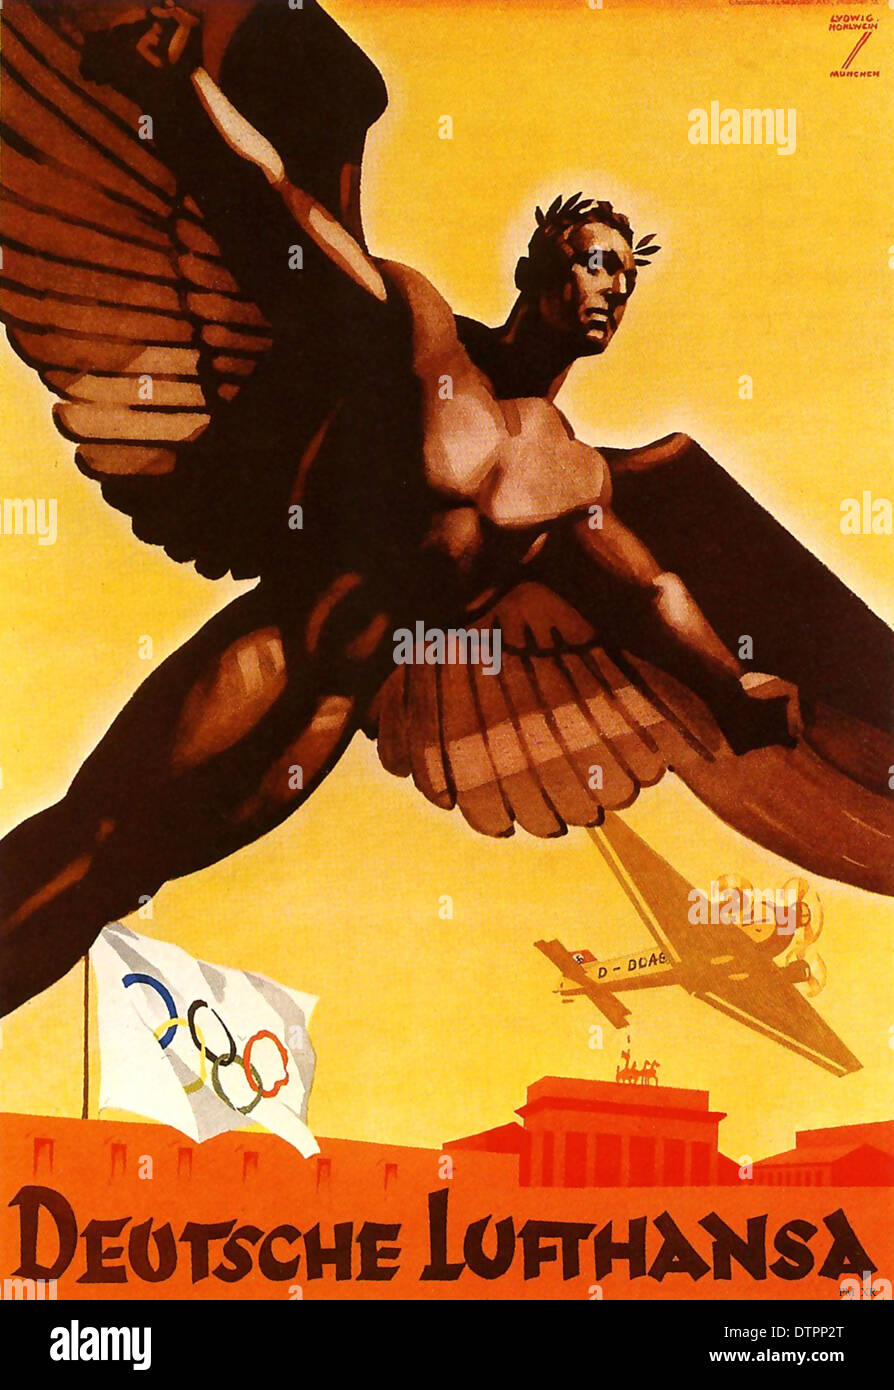 German propaganda poster promoting Lufthansa airlines during Olympics games in Berlin 1936 Germany - Stock Image